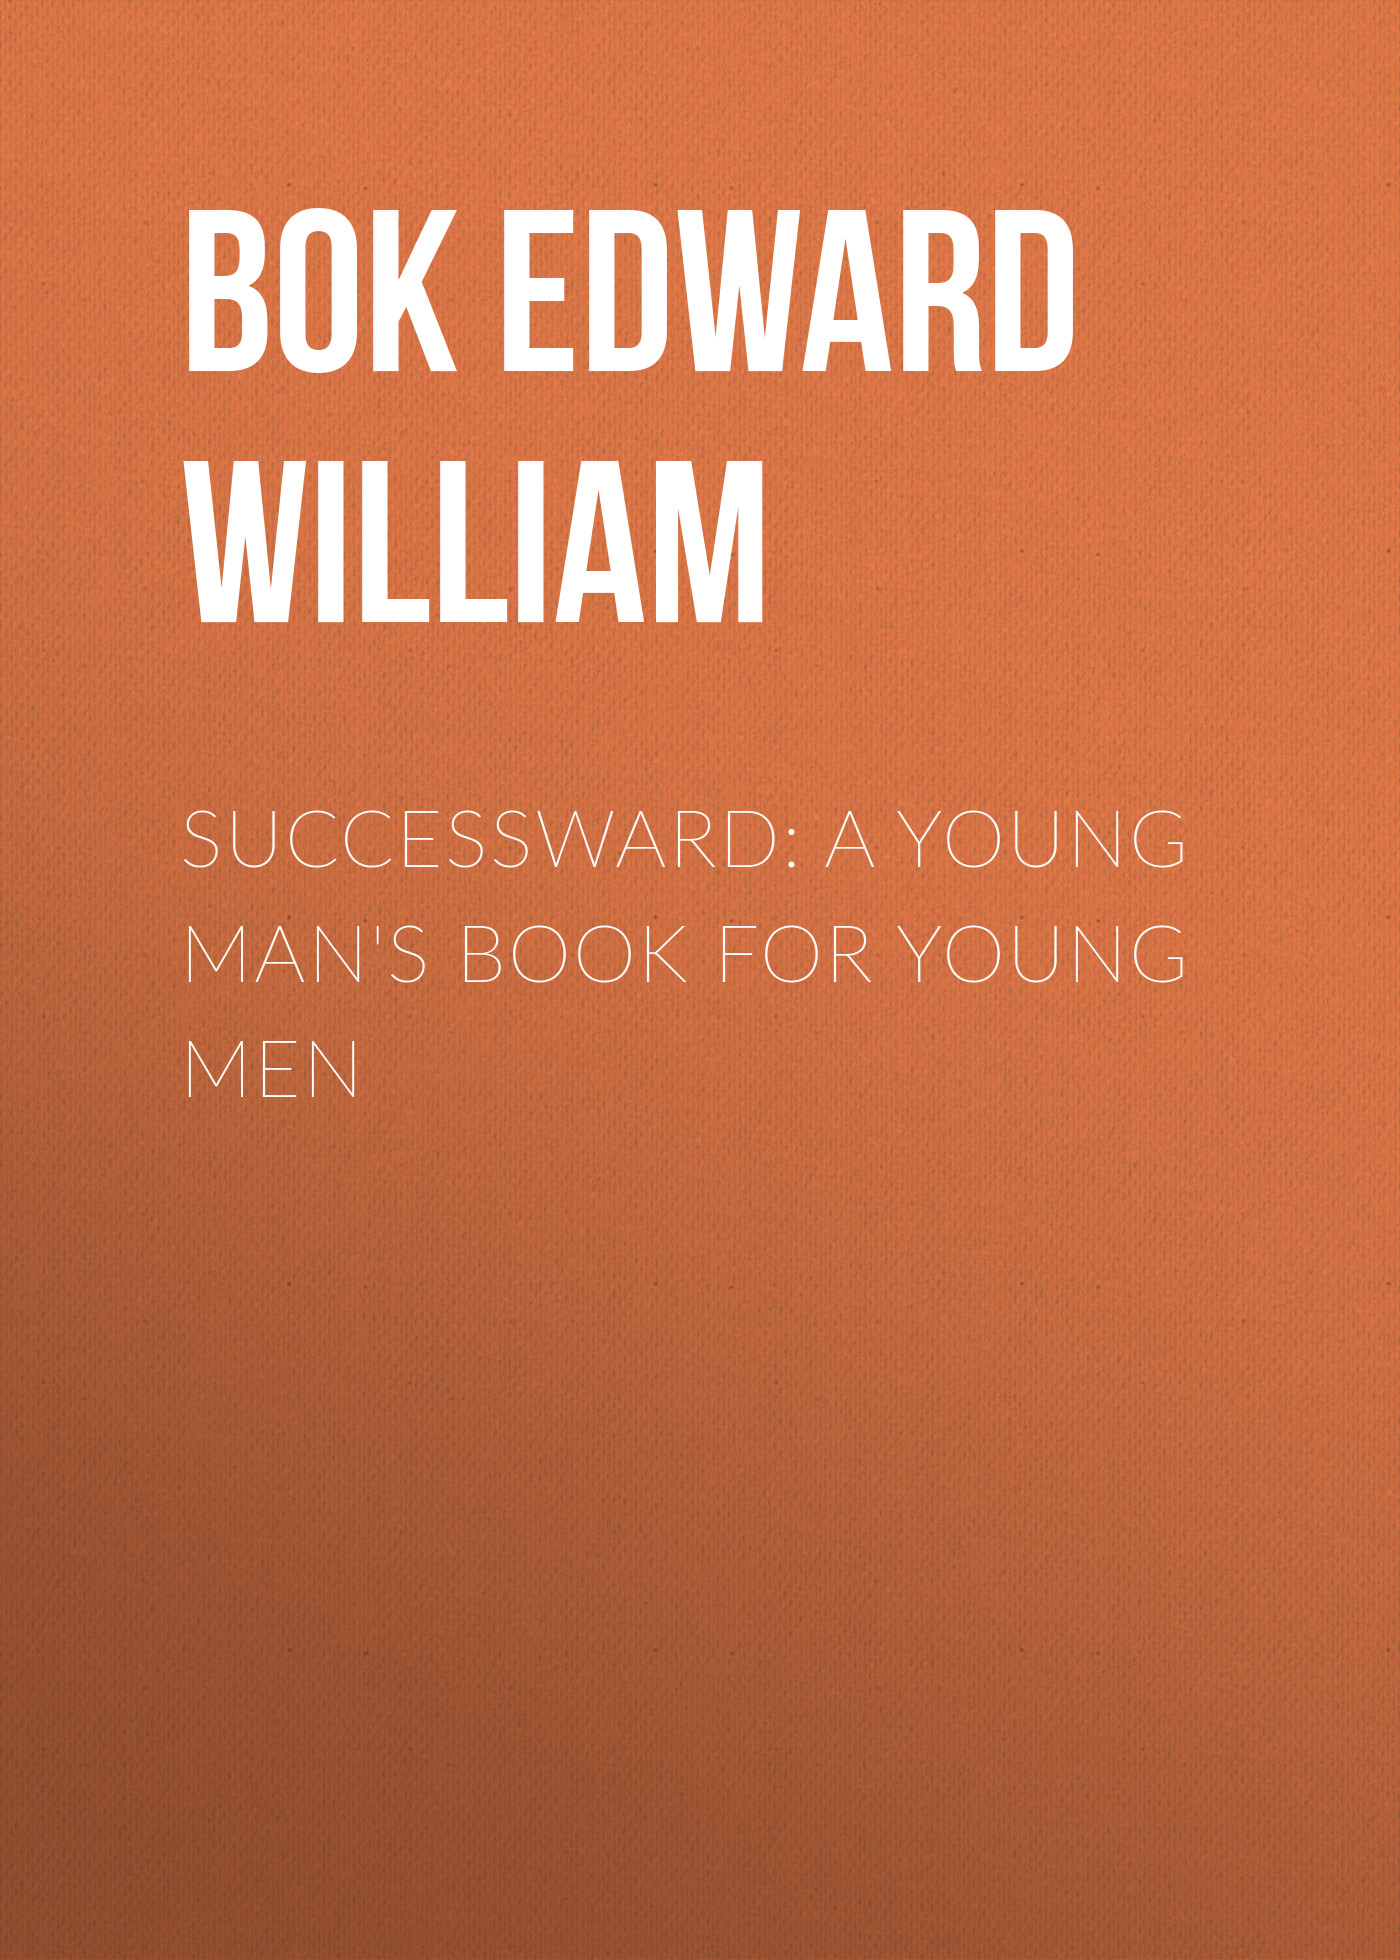 Bok Edward William Successward: A Young Man's Book for Young Men bok edward william the young man in business